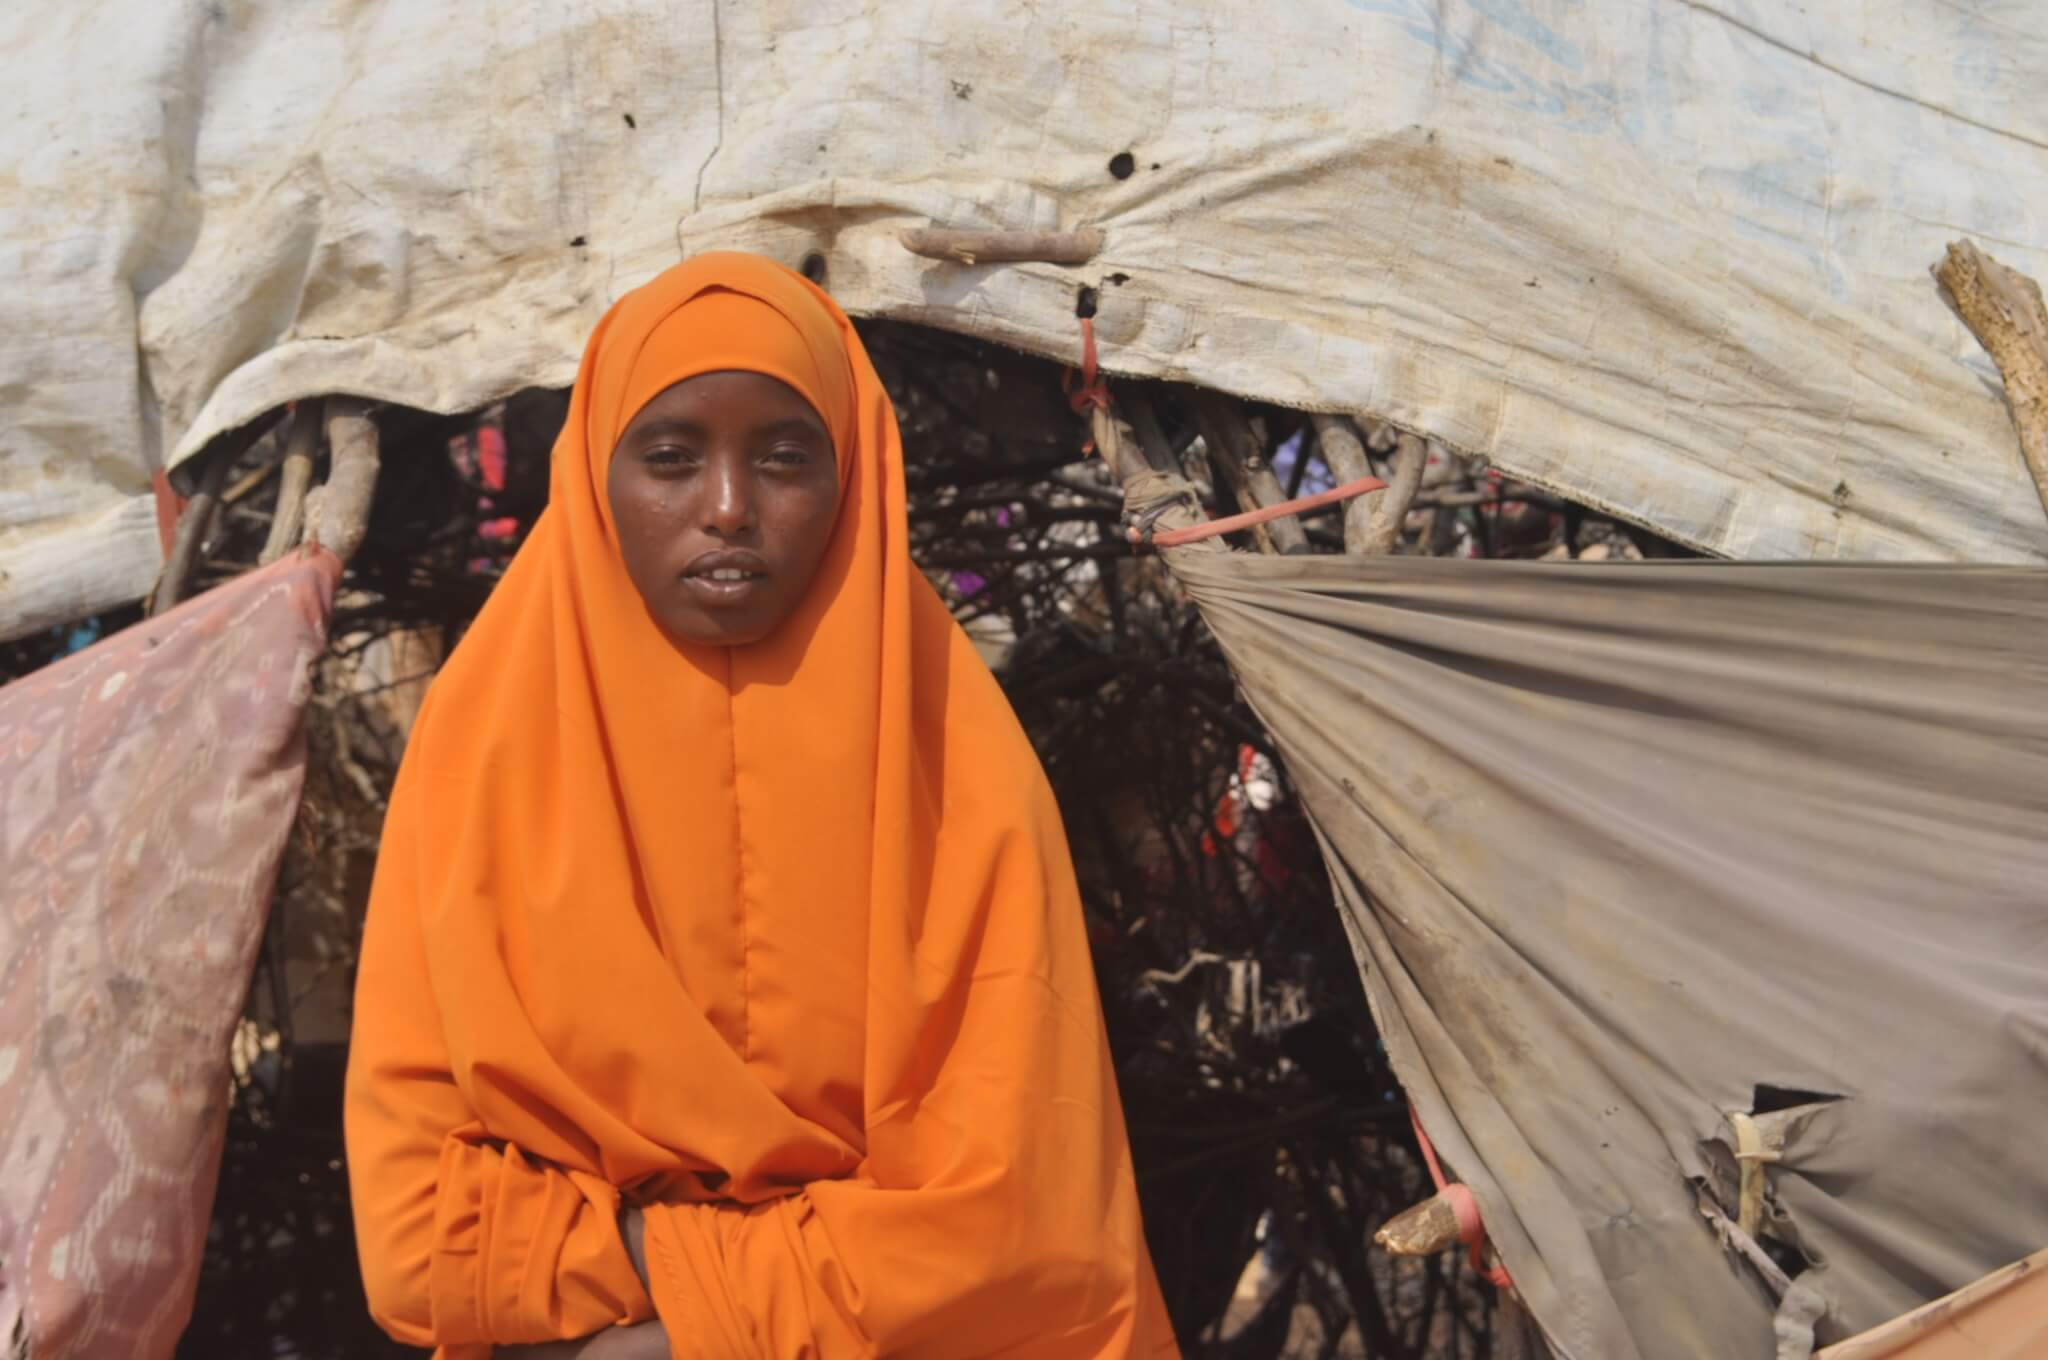 For Many Somali Girls, Education Ends With a Brutal Ritual - Al